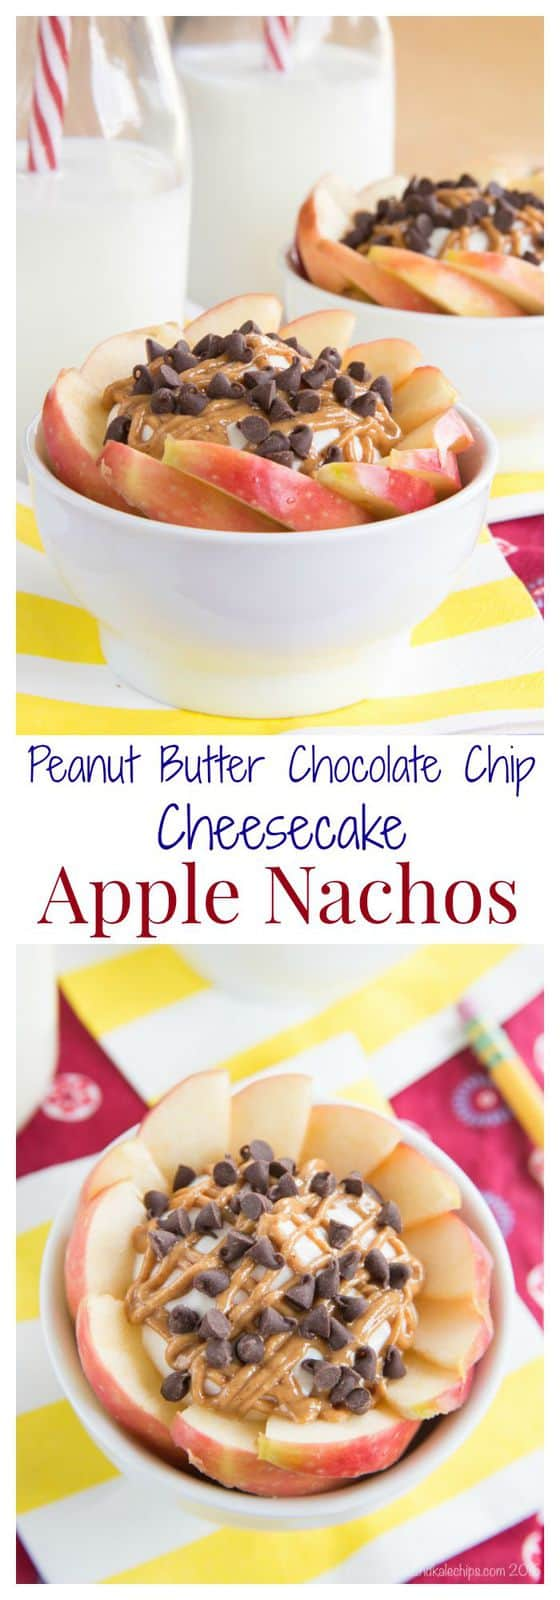 Peanut Butter Chocolate Chip Cheesecake Apple Nachos - my kids love these! I love that they are easy, healthy, and only take seven basic ingredients and a few minutes to make! | cupcakesandkalechips.com | gluten free recipe